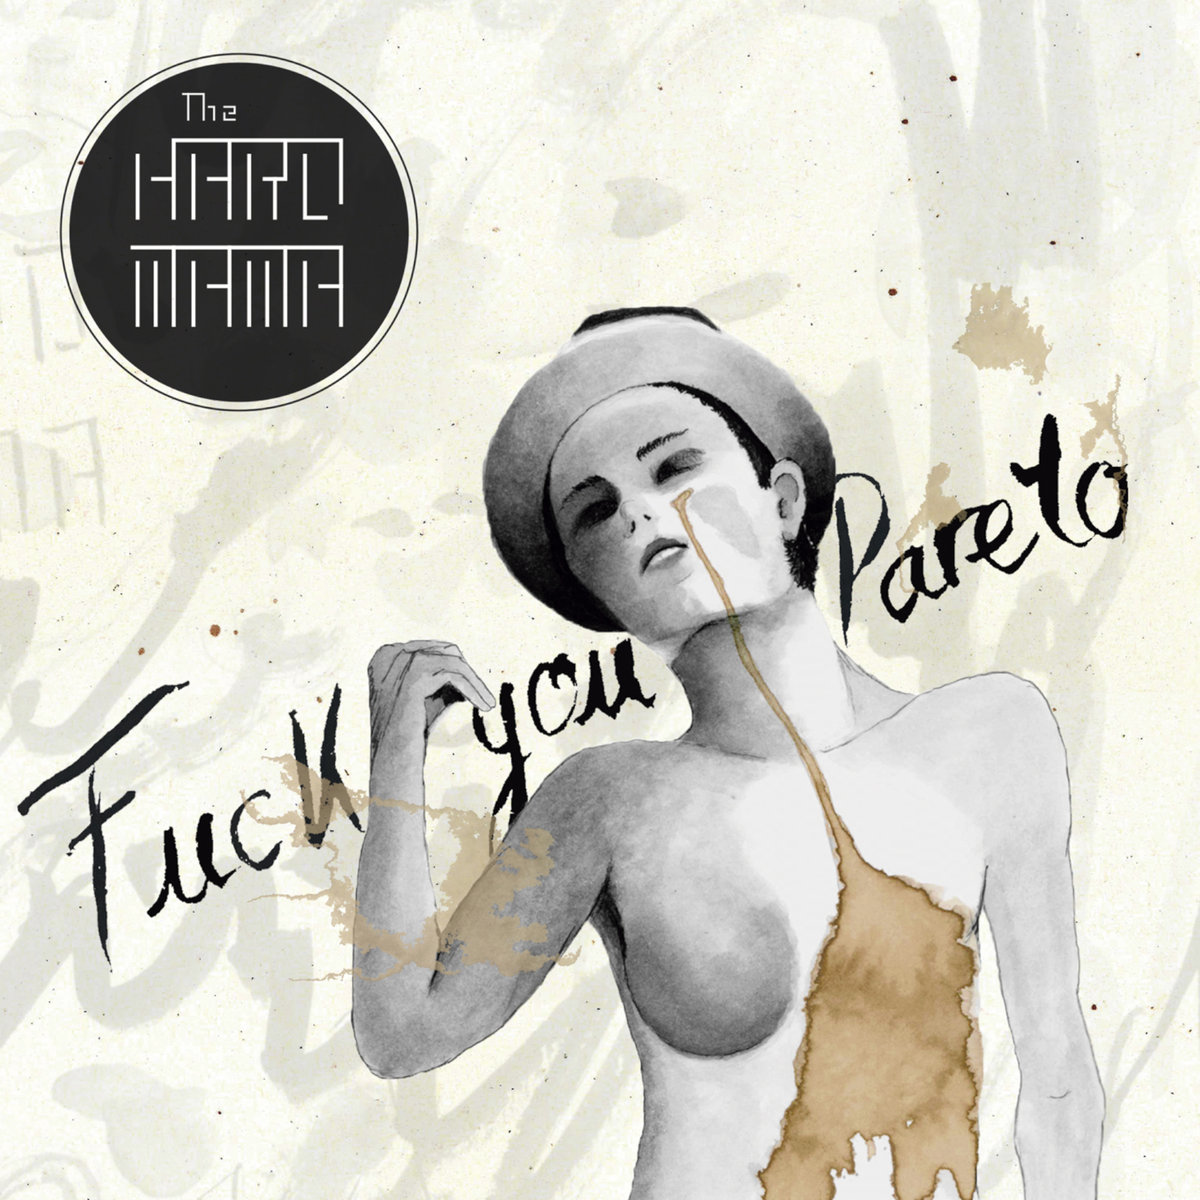 The Hard Mama - Fuck you Pareto